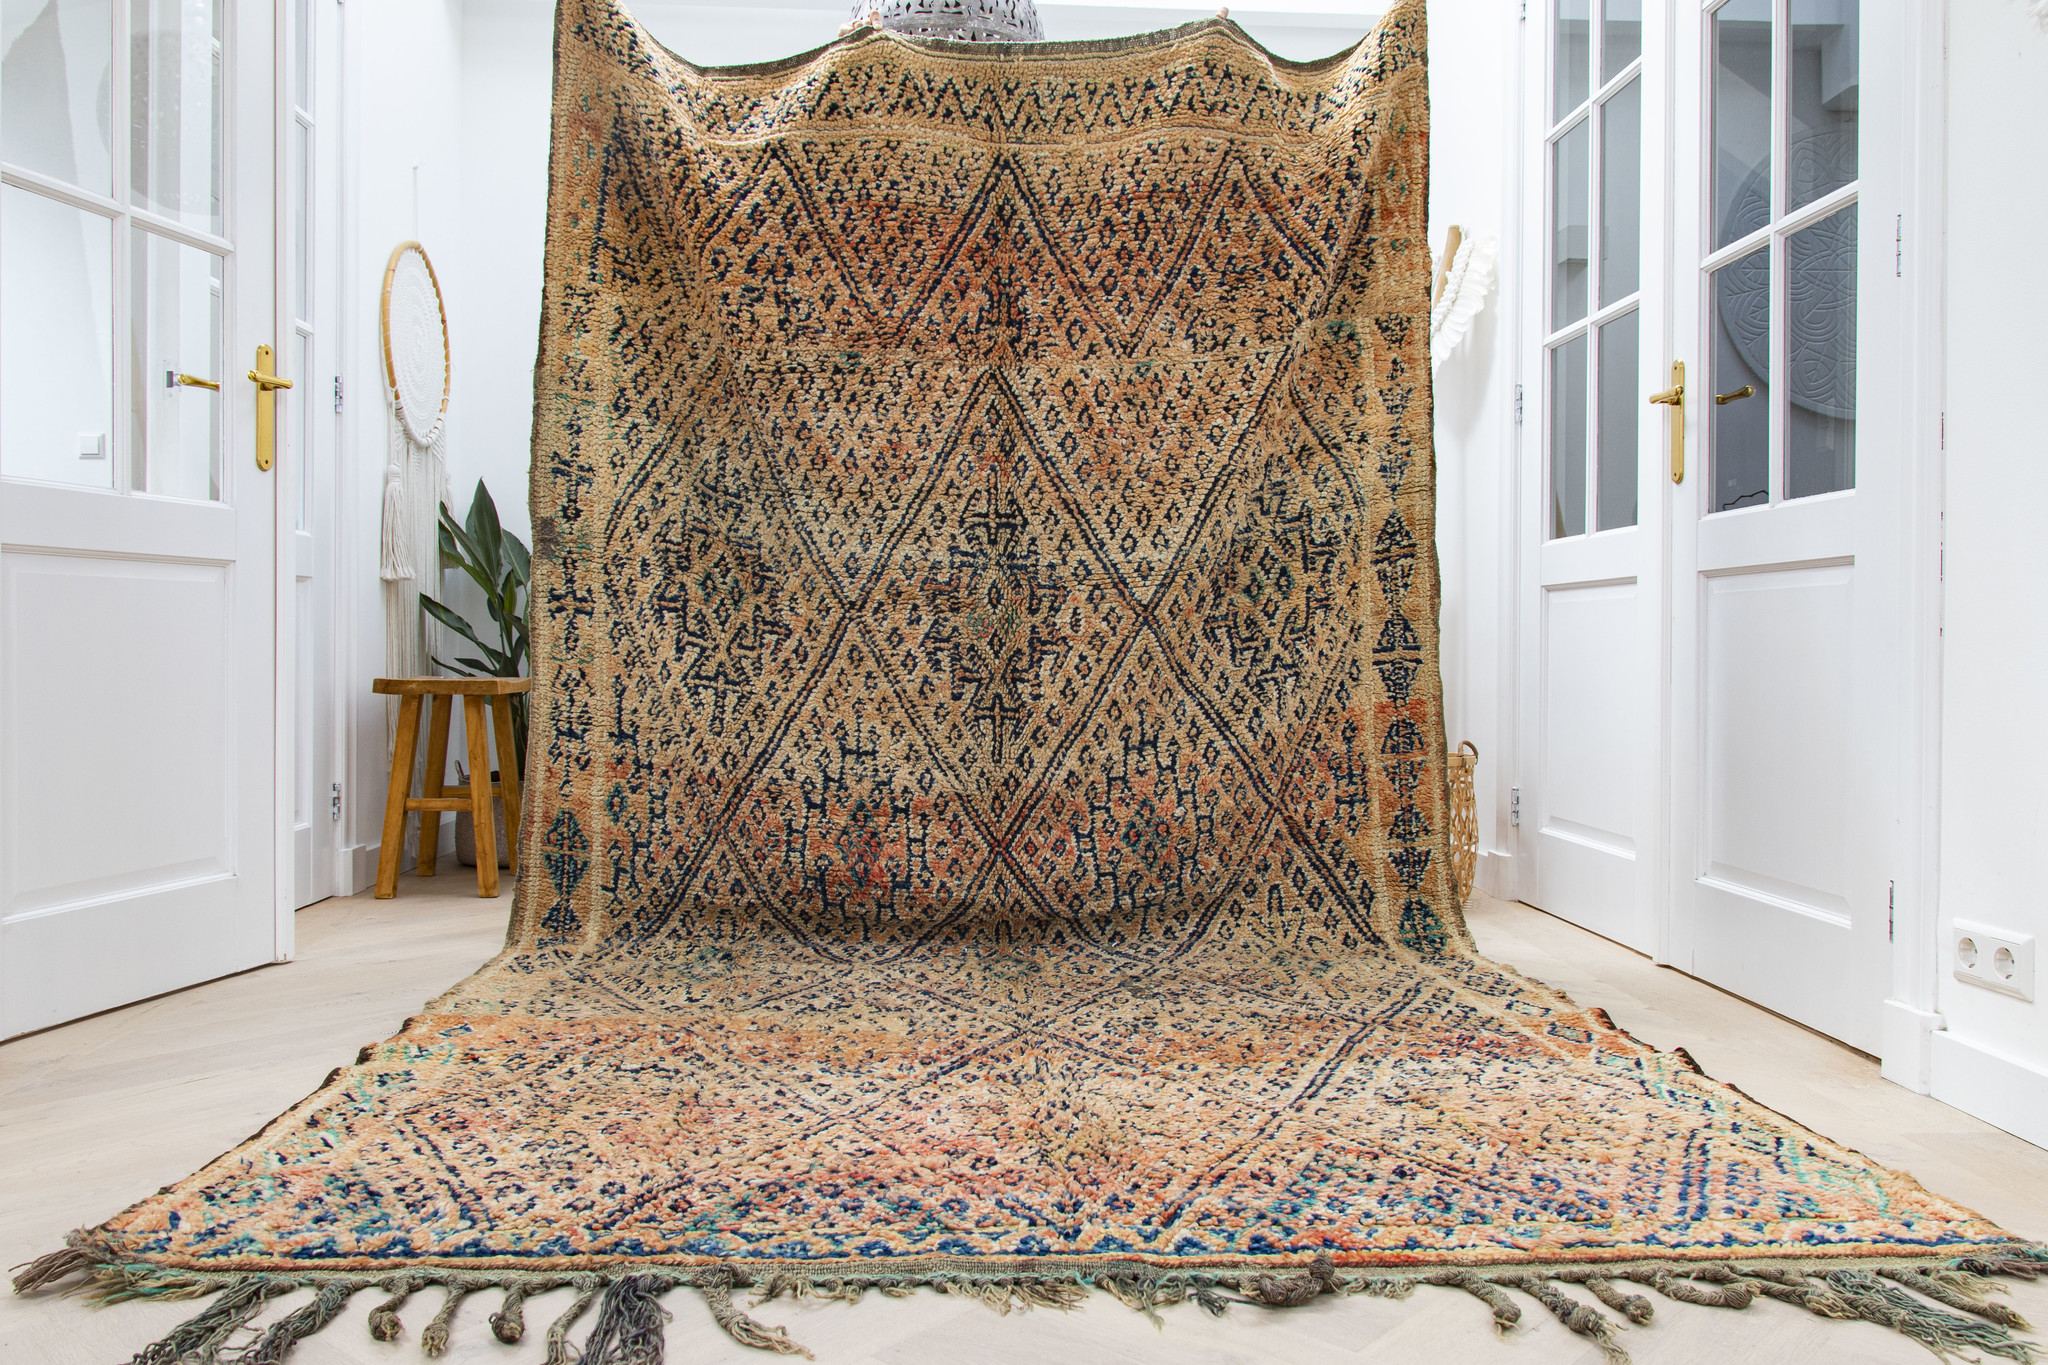 Simply Pure Handknotted Vintage Beni M'guild berber rug from Morocco  190 x 337 cm